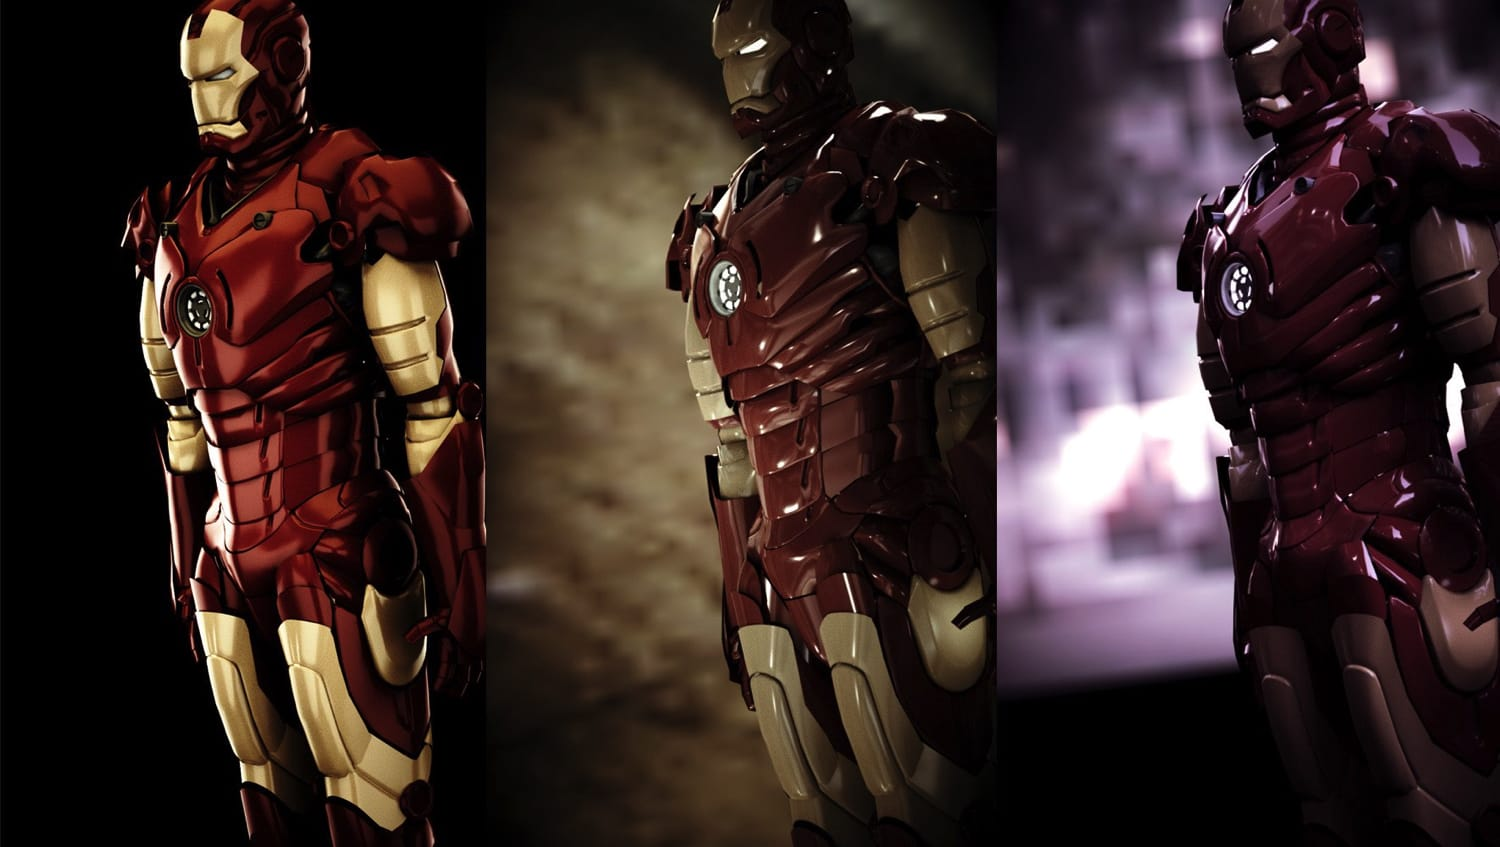 Gregdesign | Ironman 3D unbiased rendering